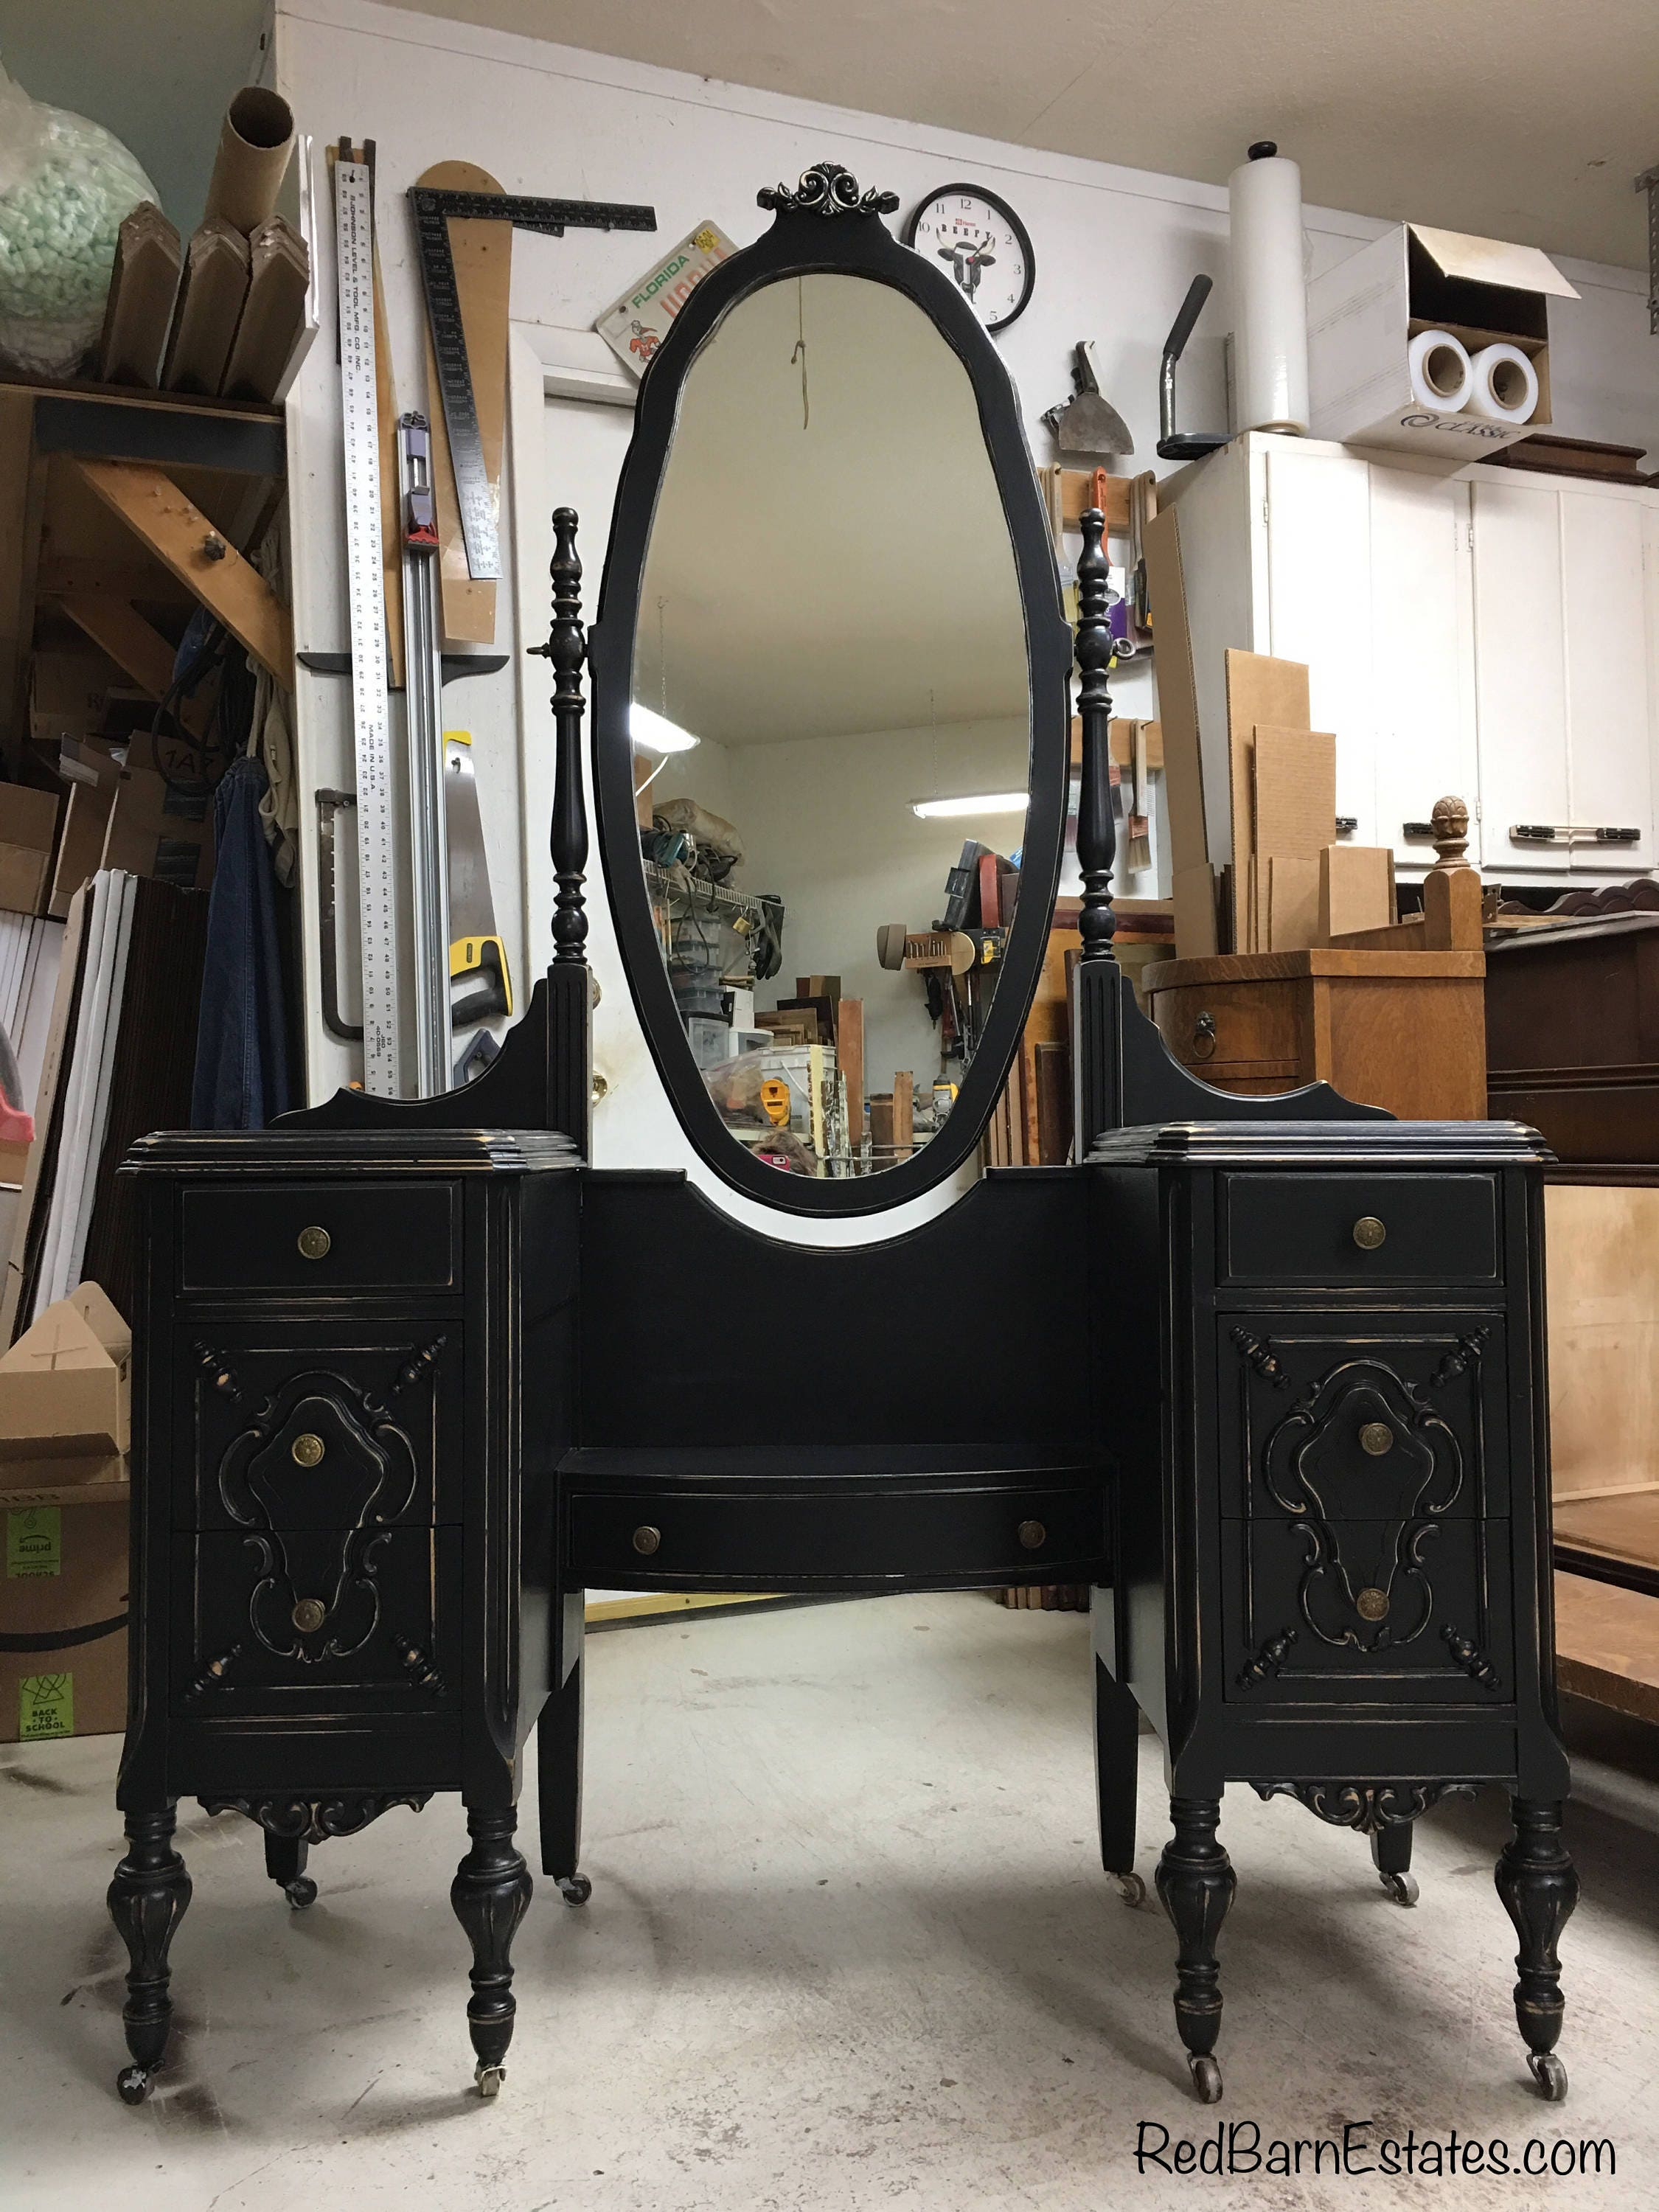 BEAUTIFUL VANITY Order Your Own Antique Painted Vanity The Shabby Chic Furniture Custom Dressing Table